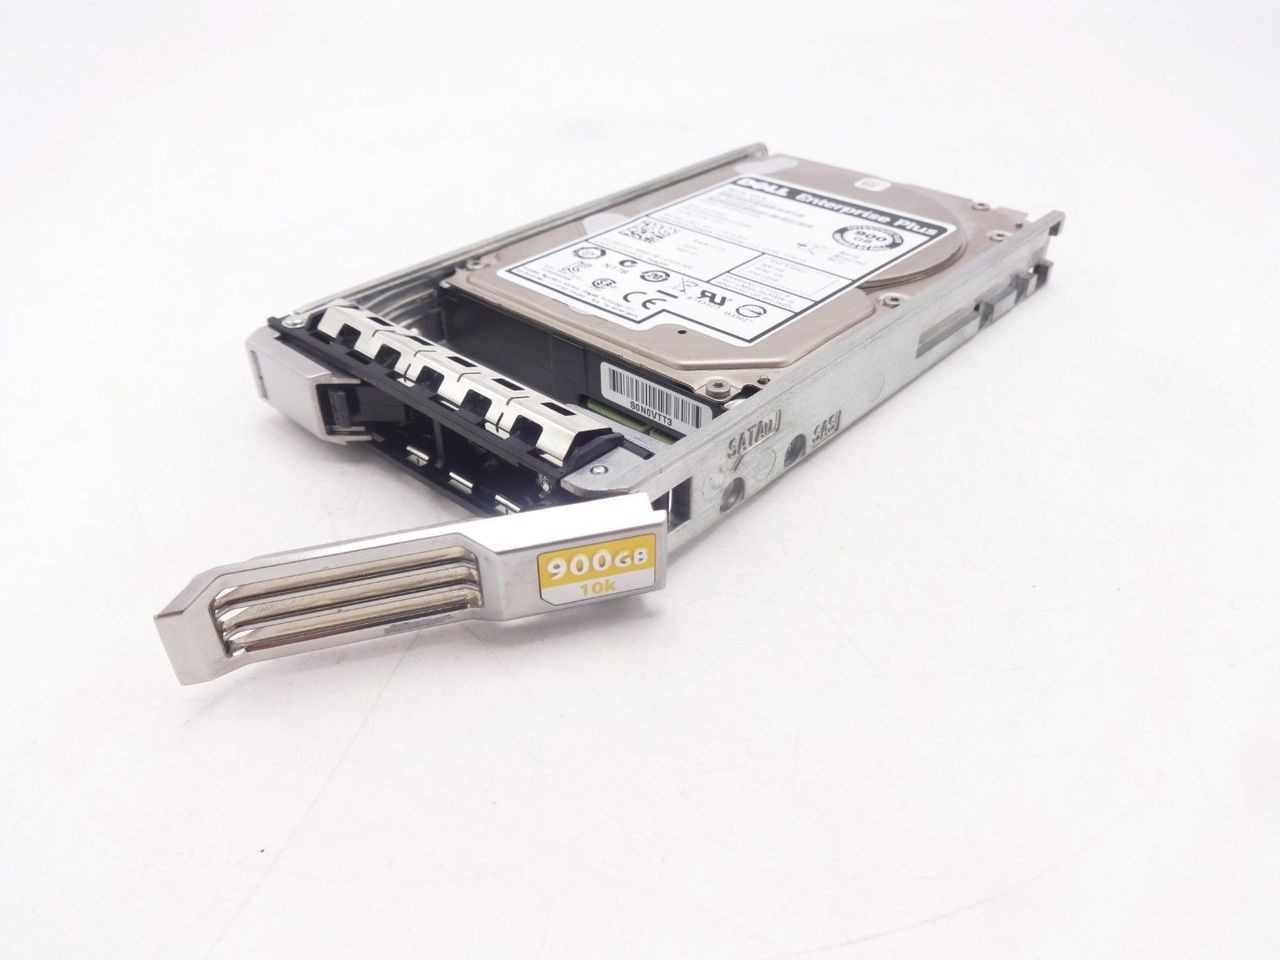 Dell Equallogic GKY31 900GB 6GBPS SAS 10K 2.5 Hard Drive